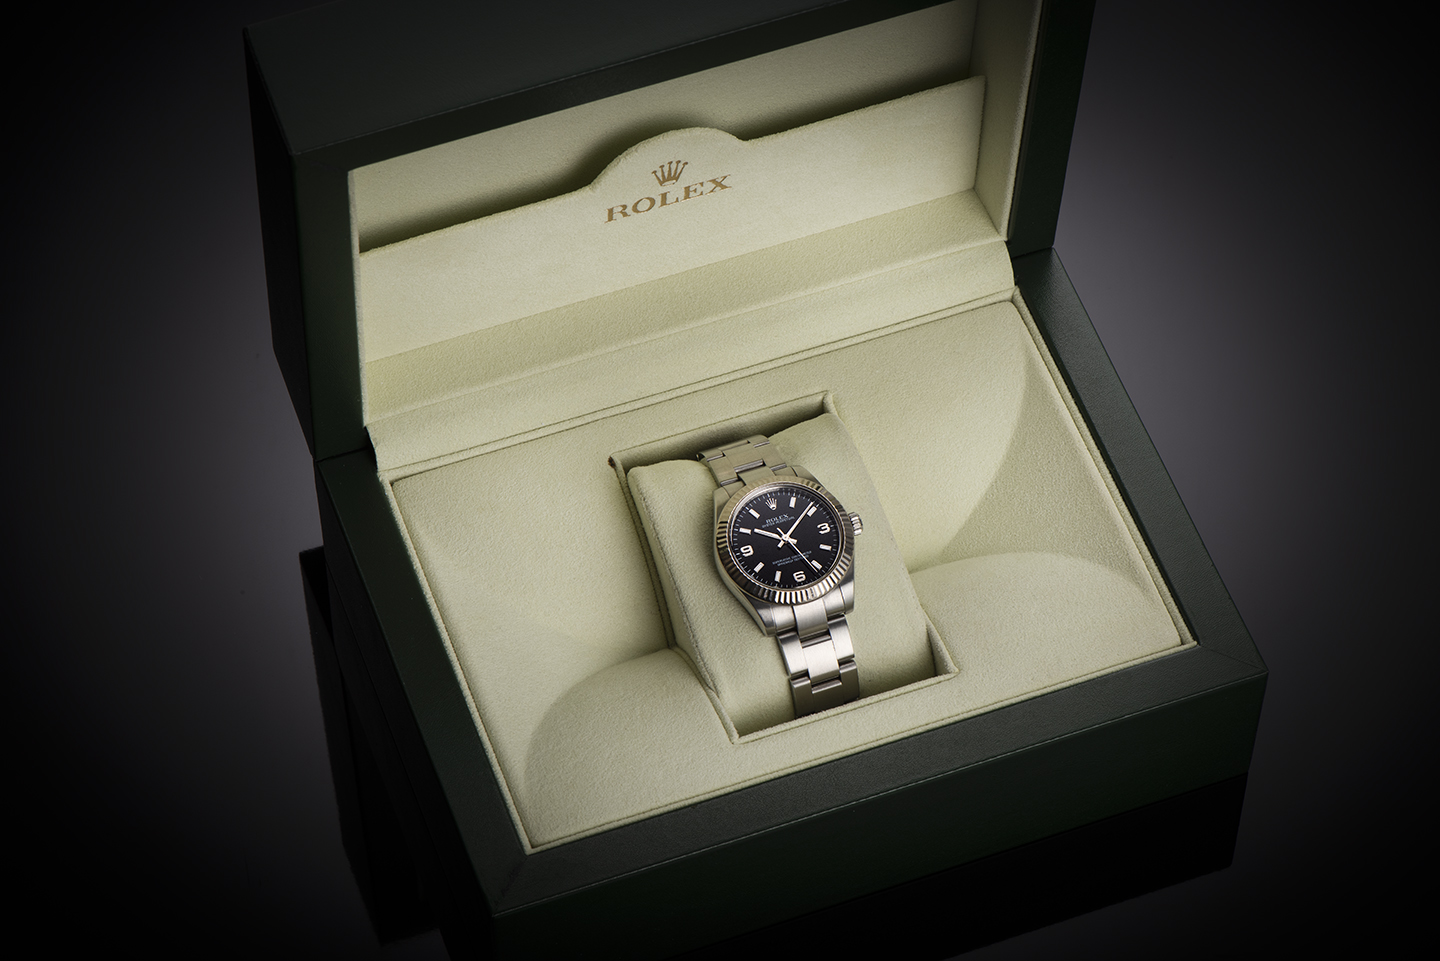 Rolex Oyster Perpetual 31 mm watch-1